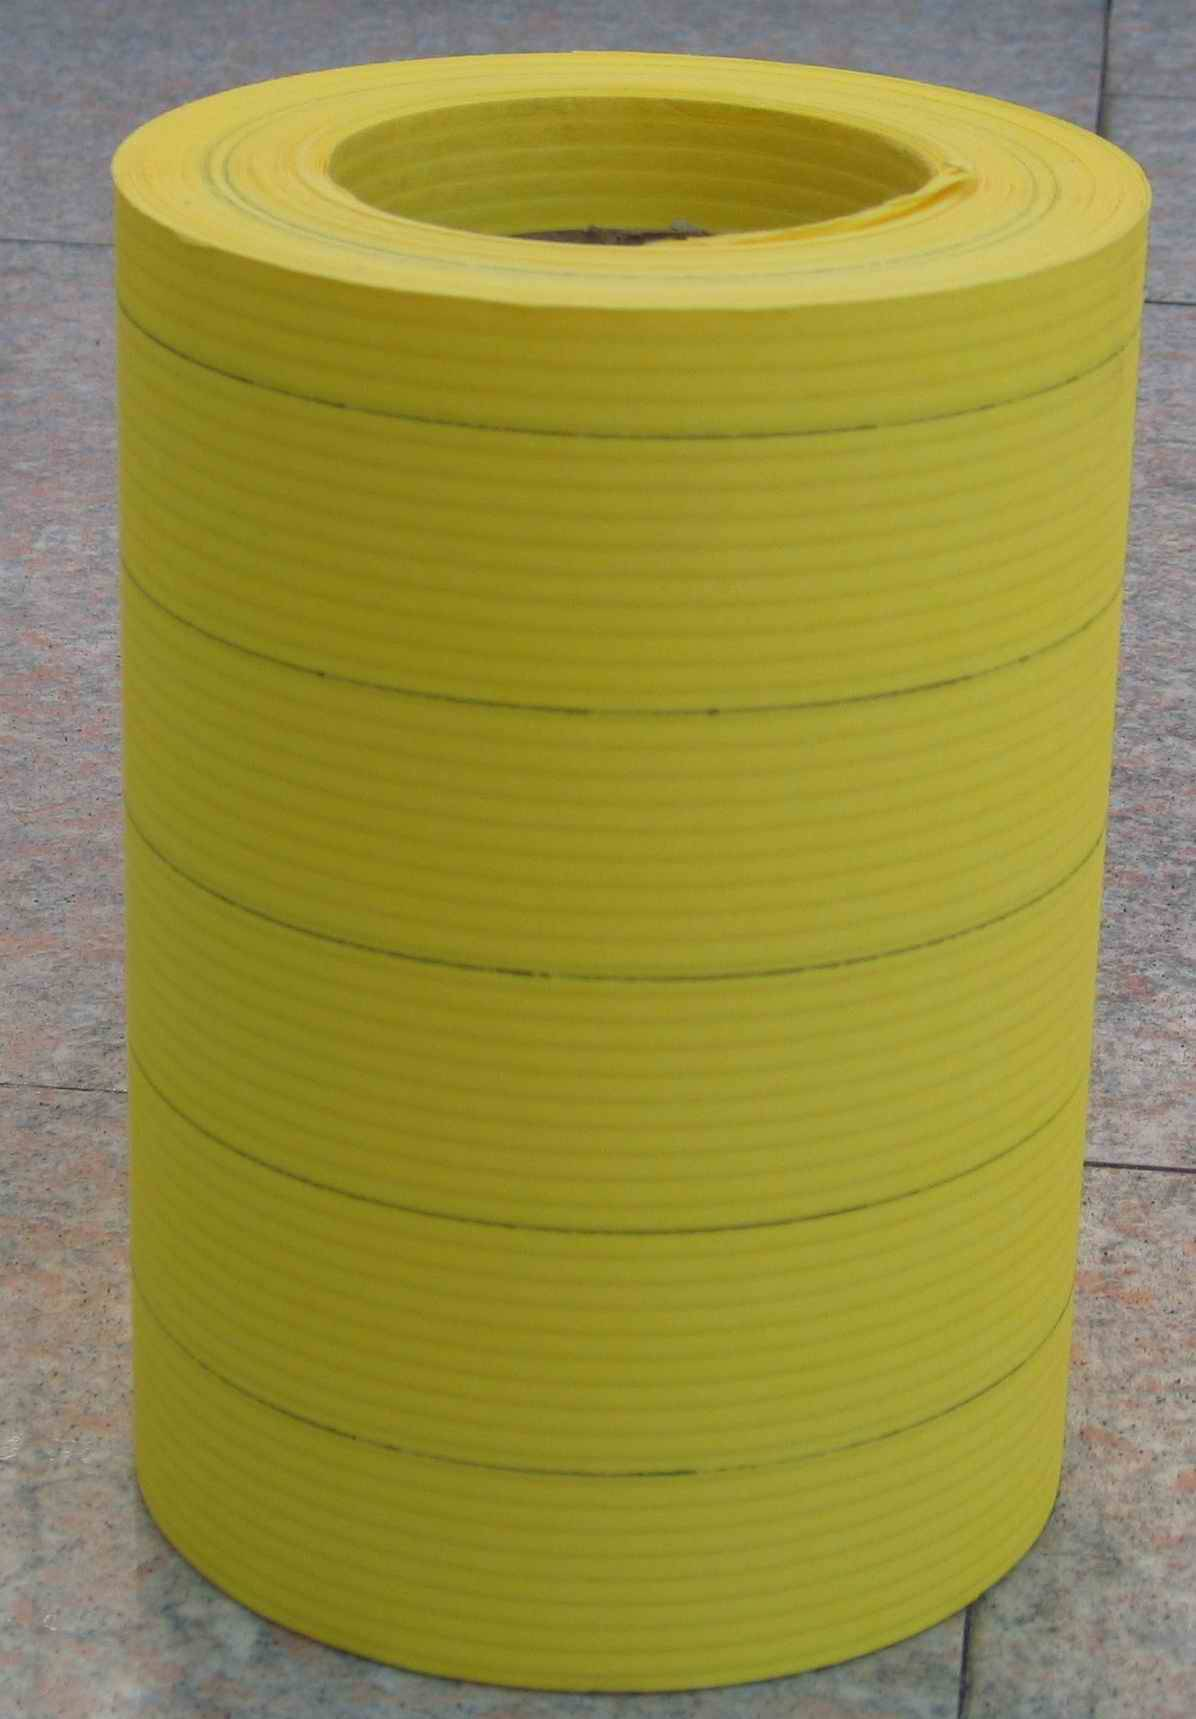 oil filter paper/efficient filter paper